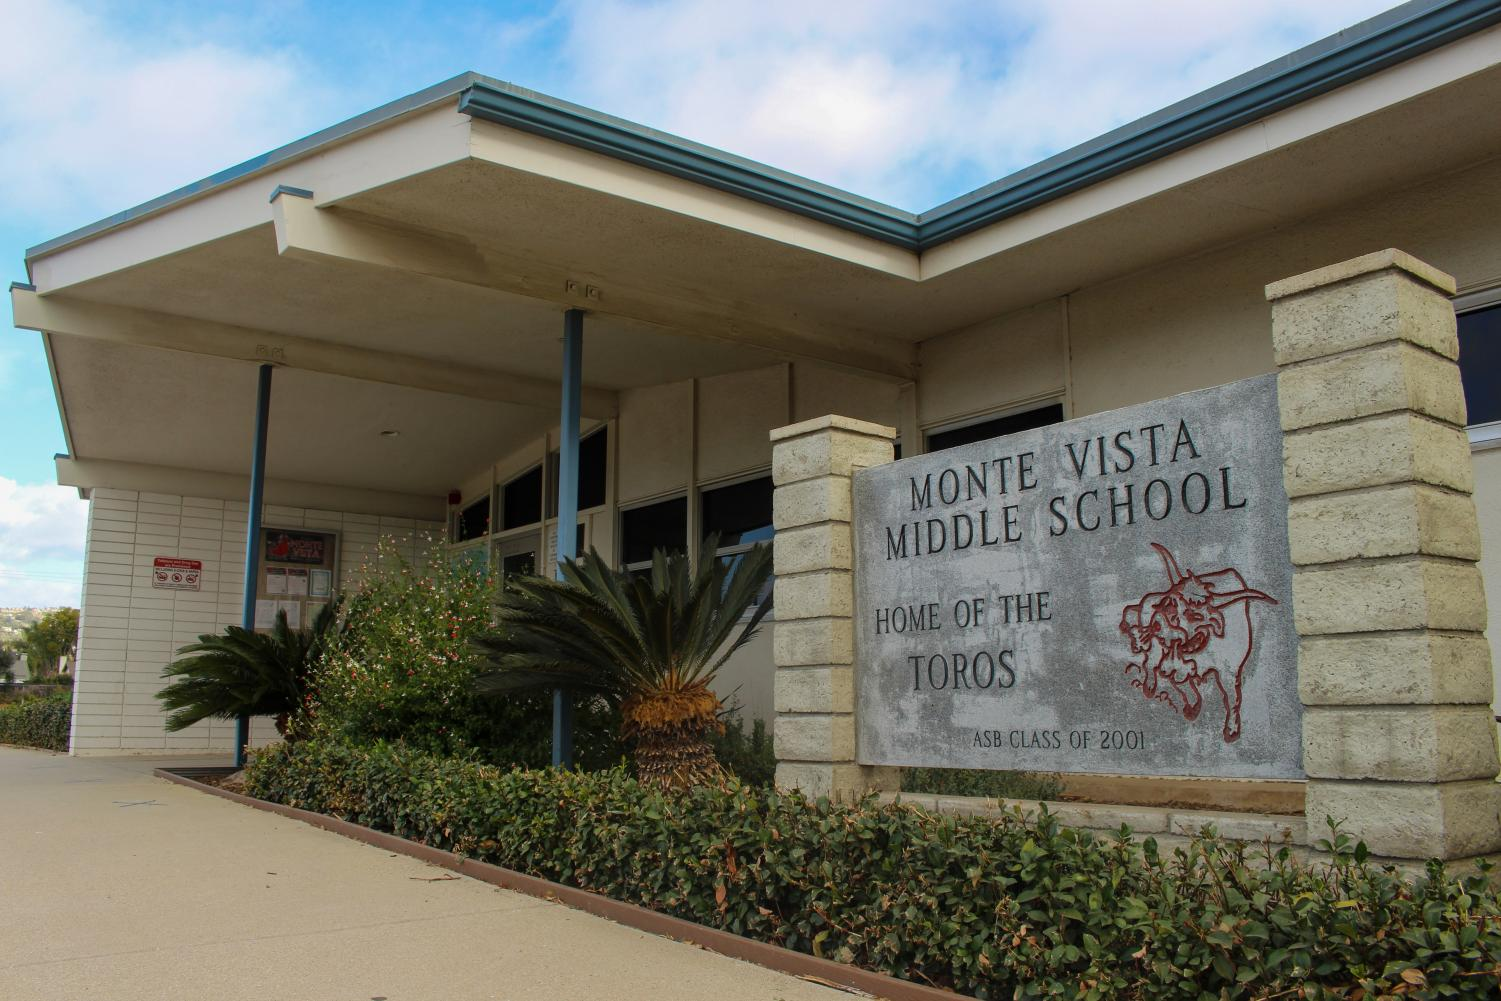 Monte Vista Middle School in Camarillo, Calif. is now open with a modified schedule on Friday, Dec. 11, due to COVID-19 precautions in California. Photo credit: Leslie Mendez